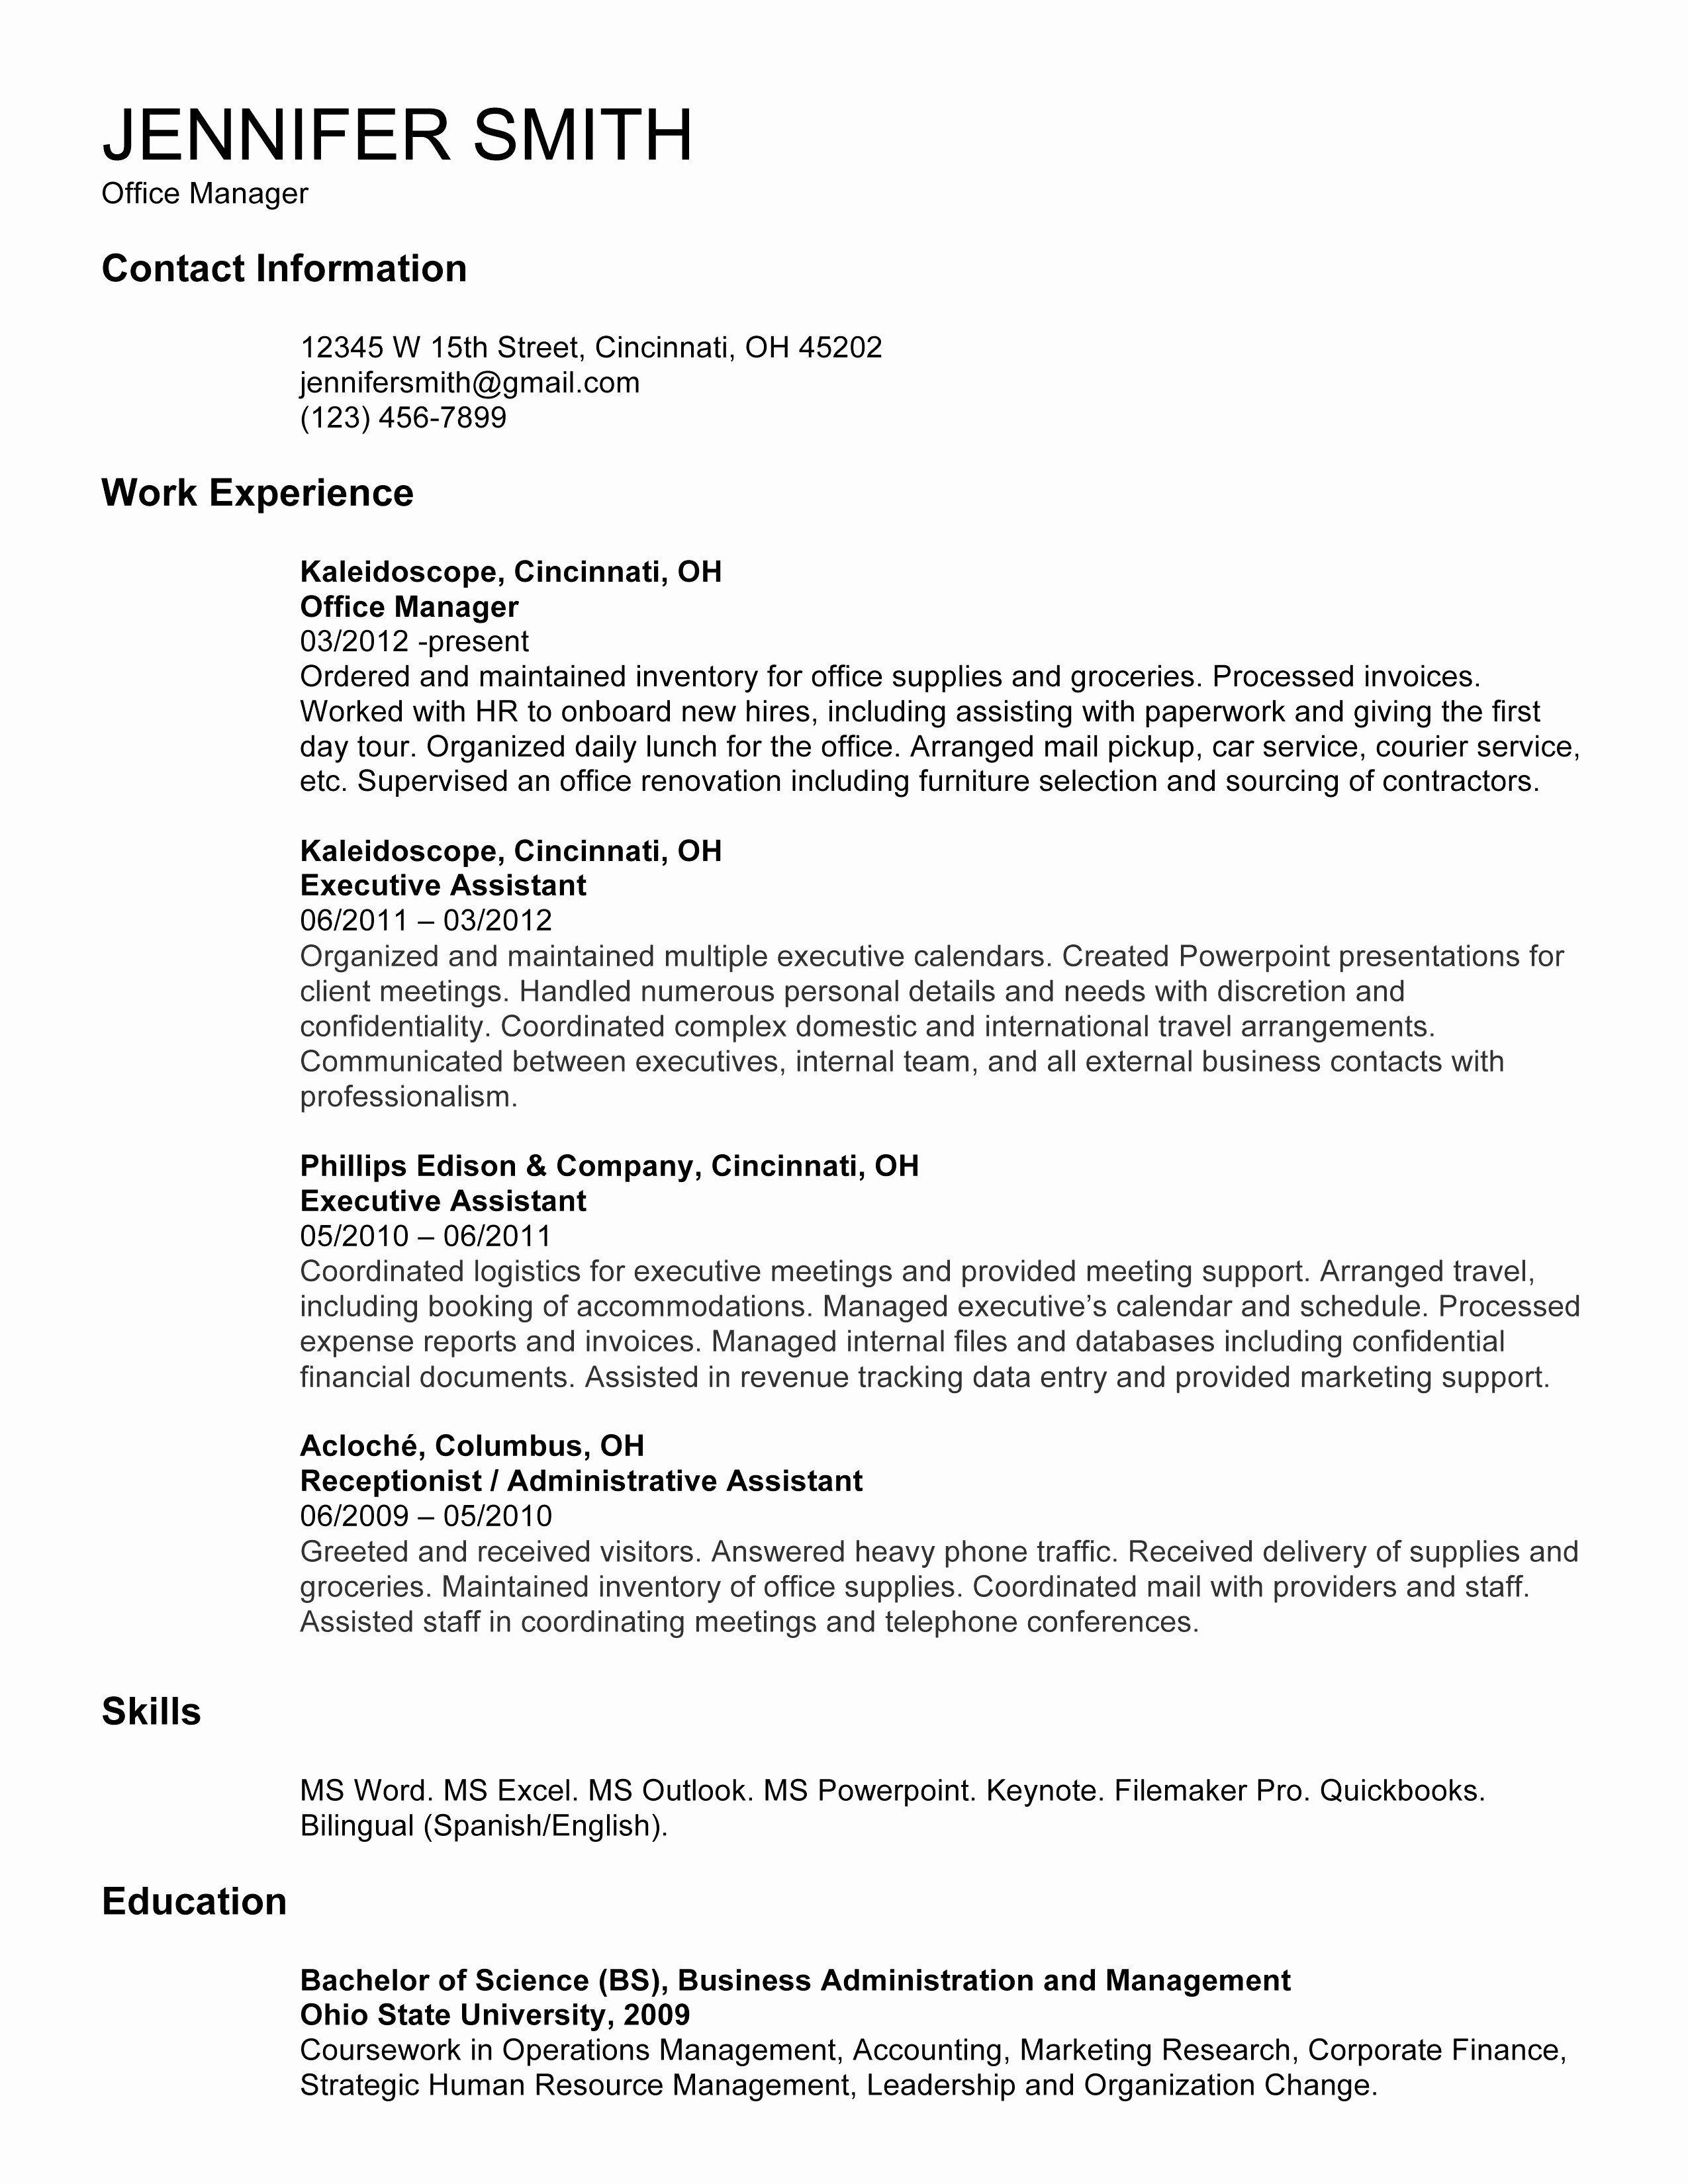 Restaurant Manager Resume Examples - assistant Manager Duties for Resume Best Restaurant Manager Resume